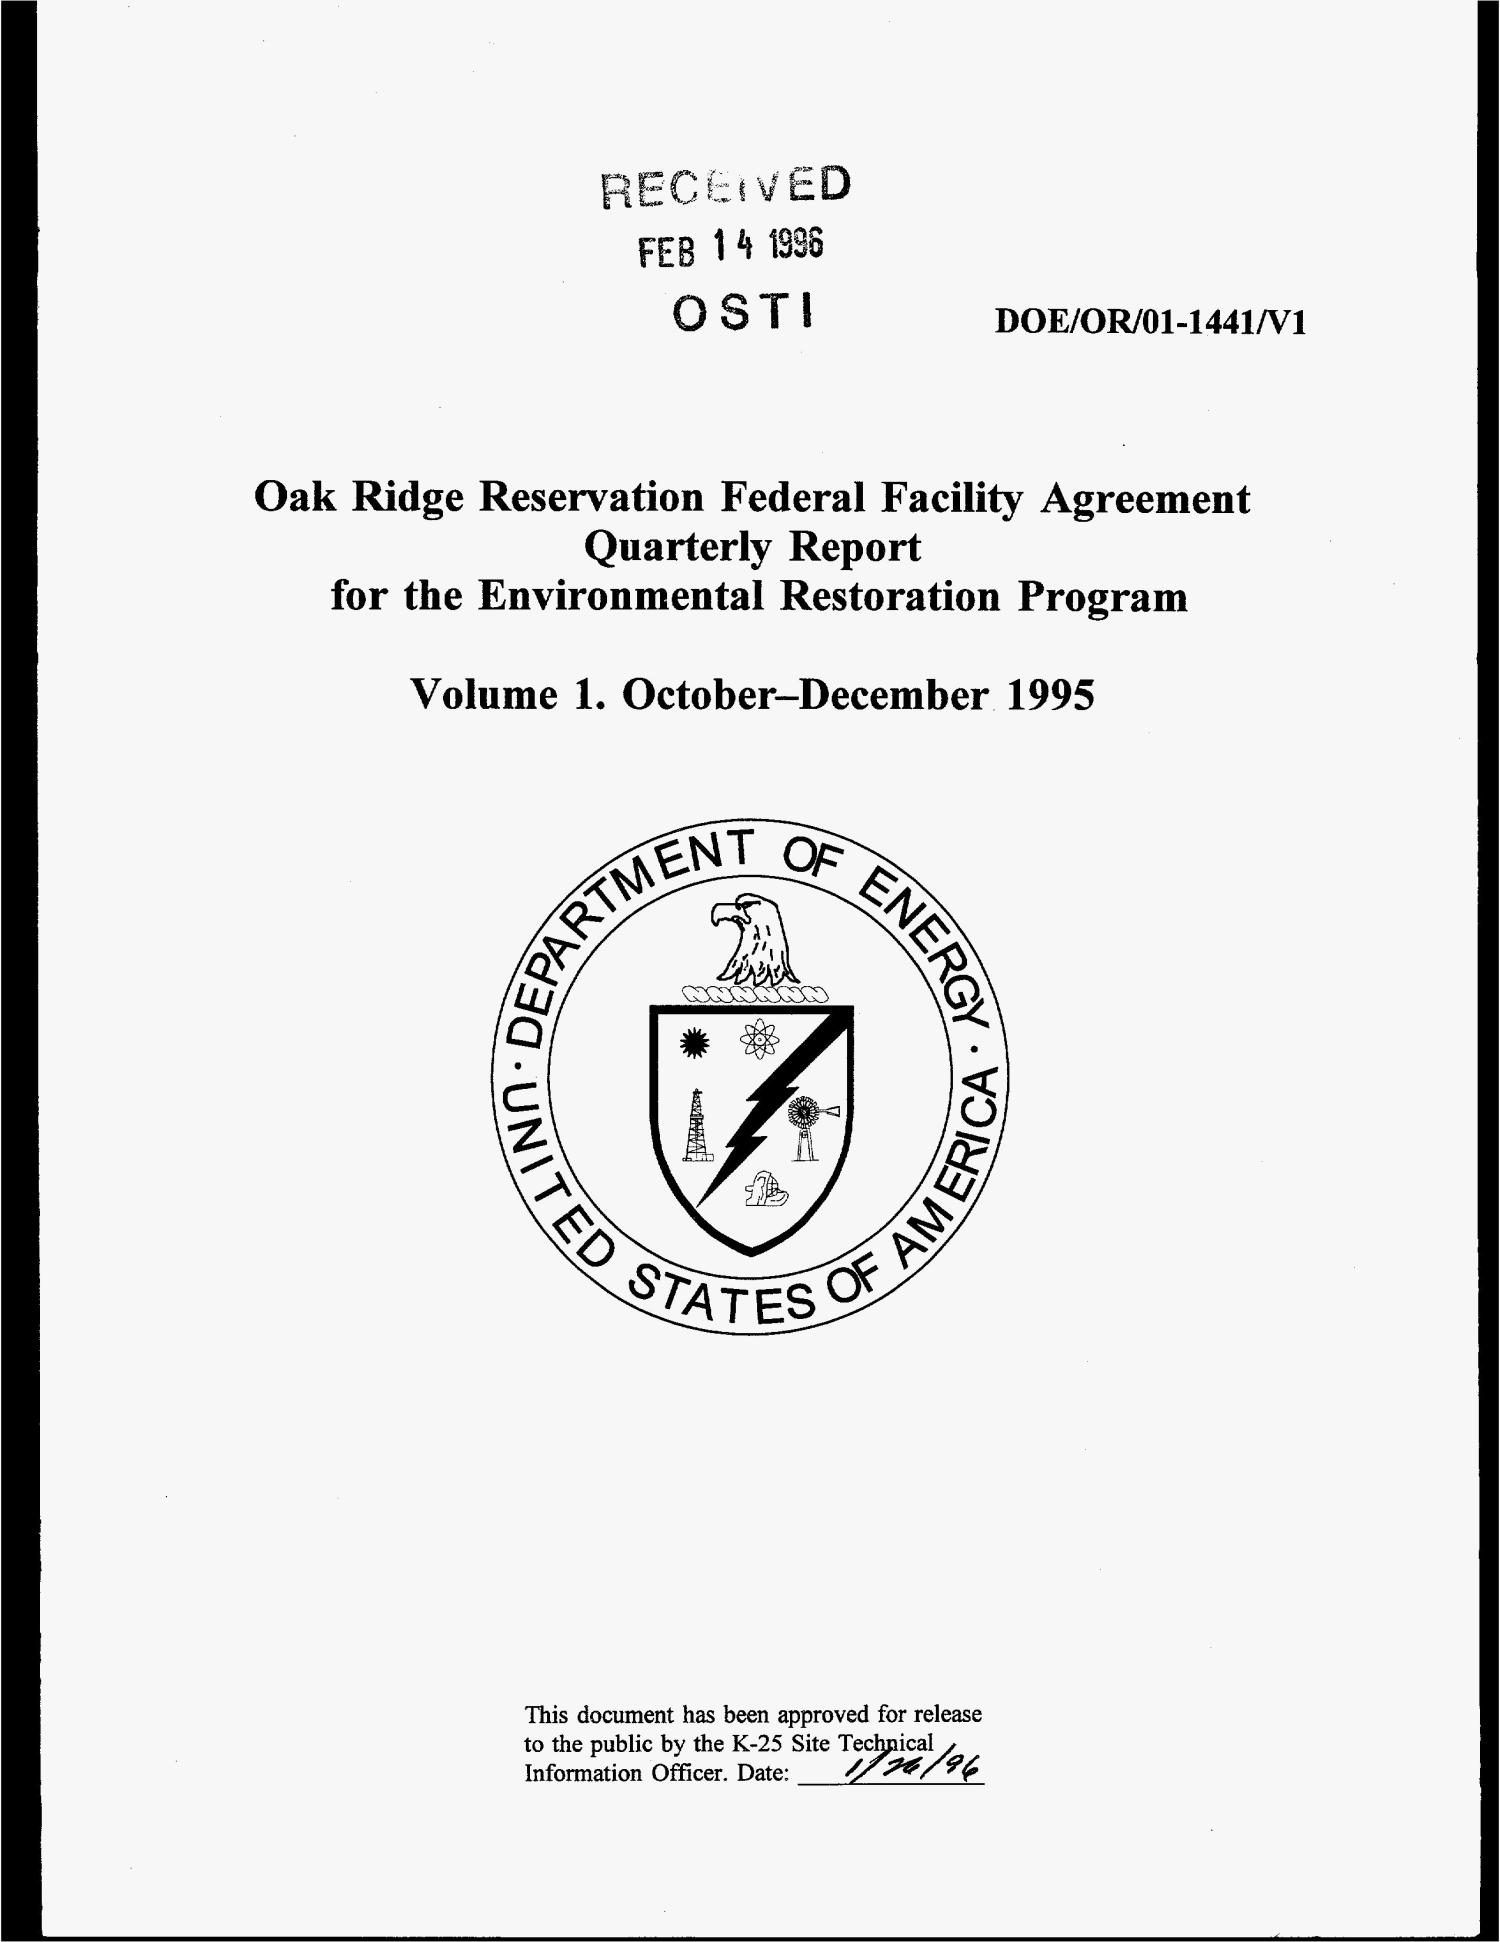 Oak Ridge Reservation Federal Facility Agreement For The